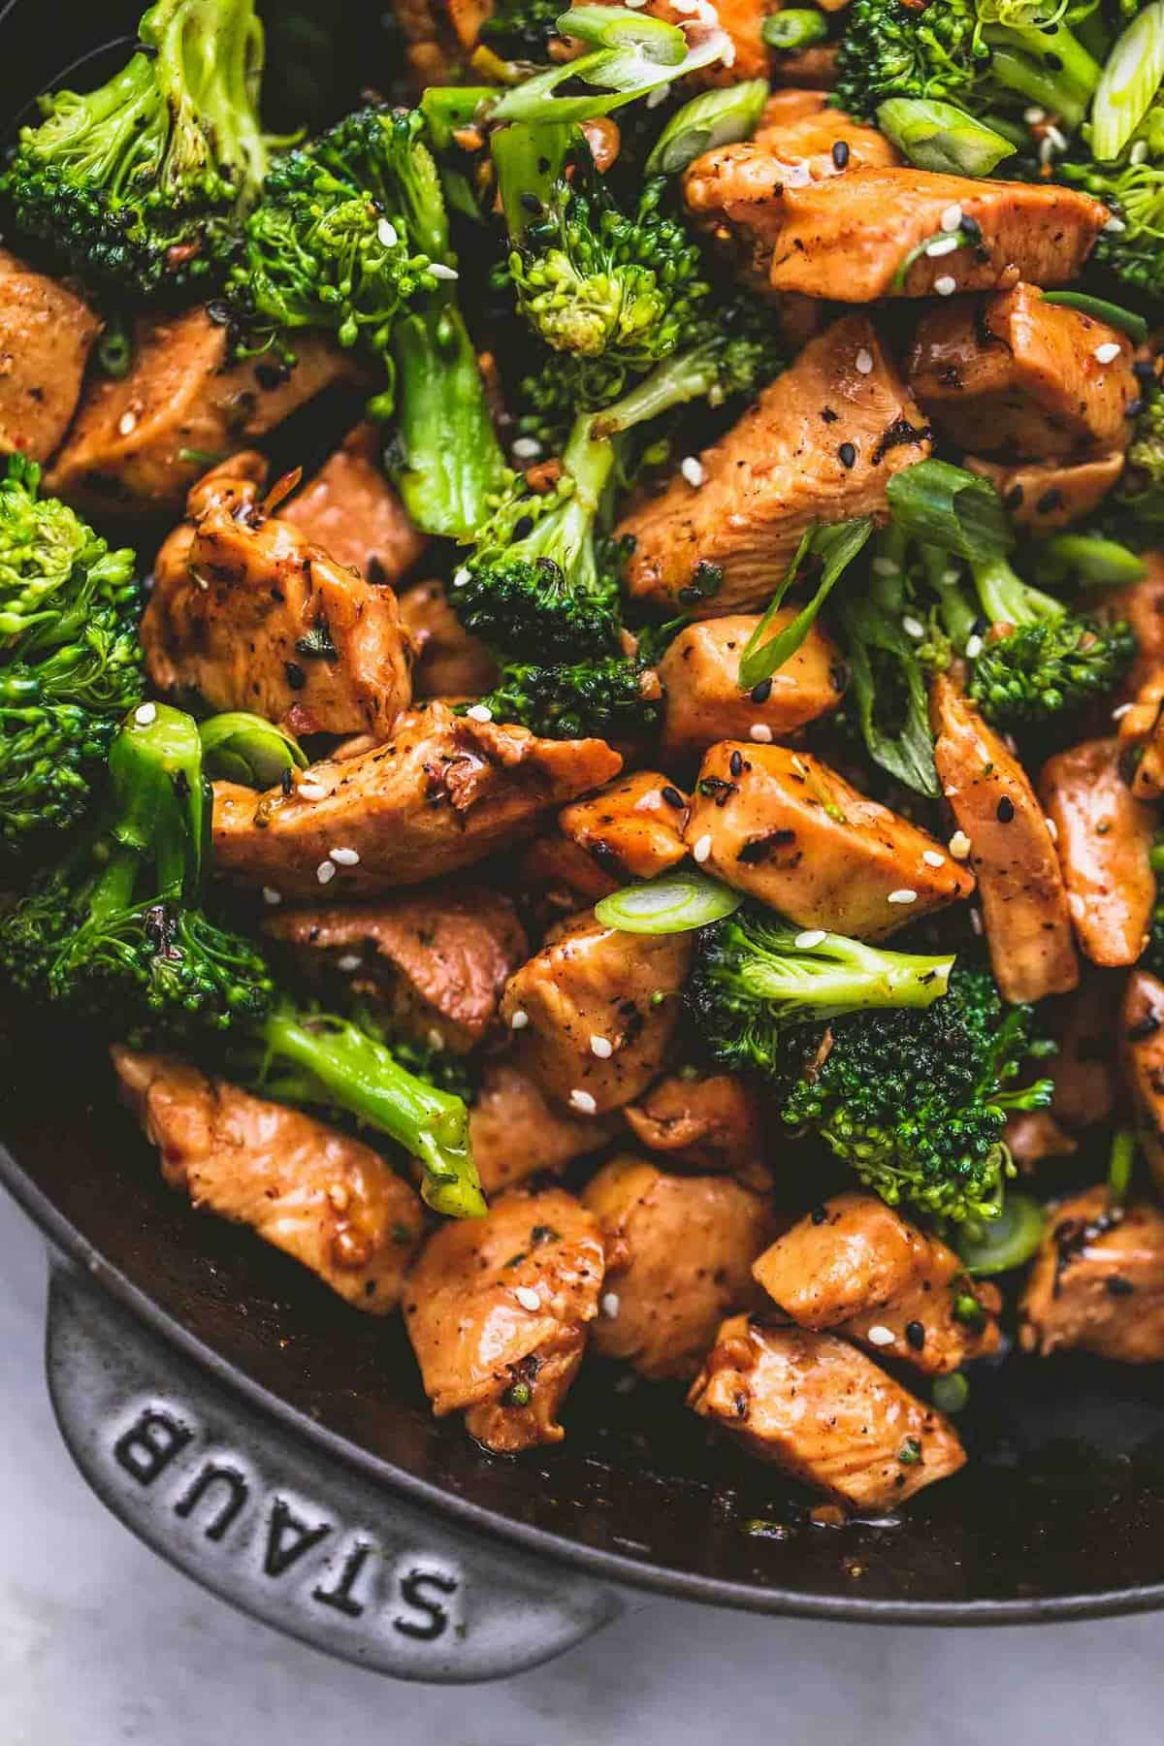 Chicken and Broccoli Stir Fry - Recipes Chicken Broccoli